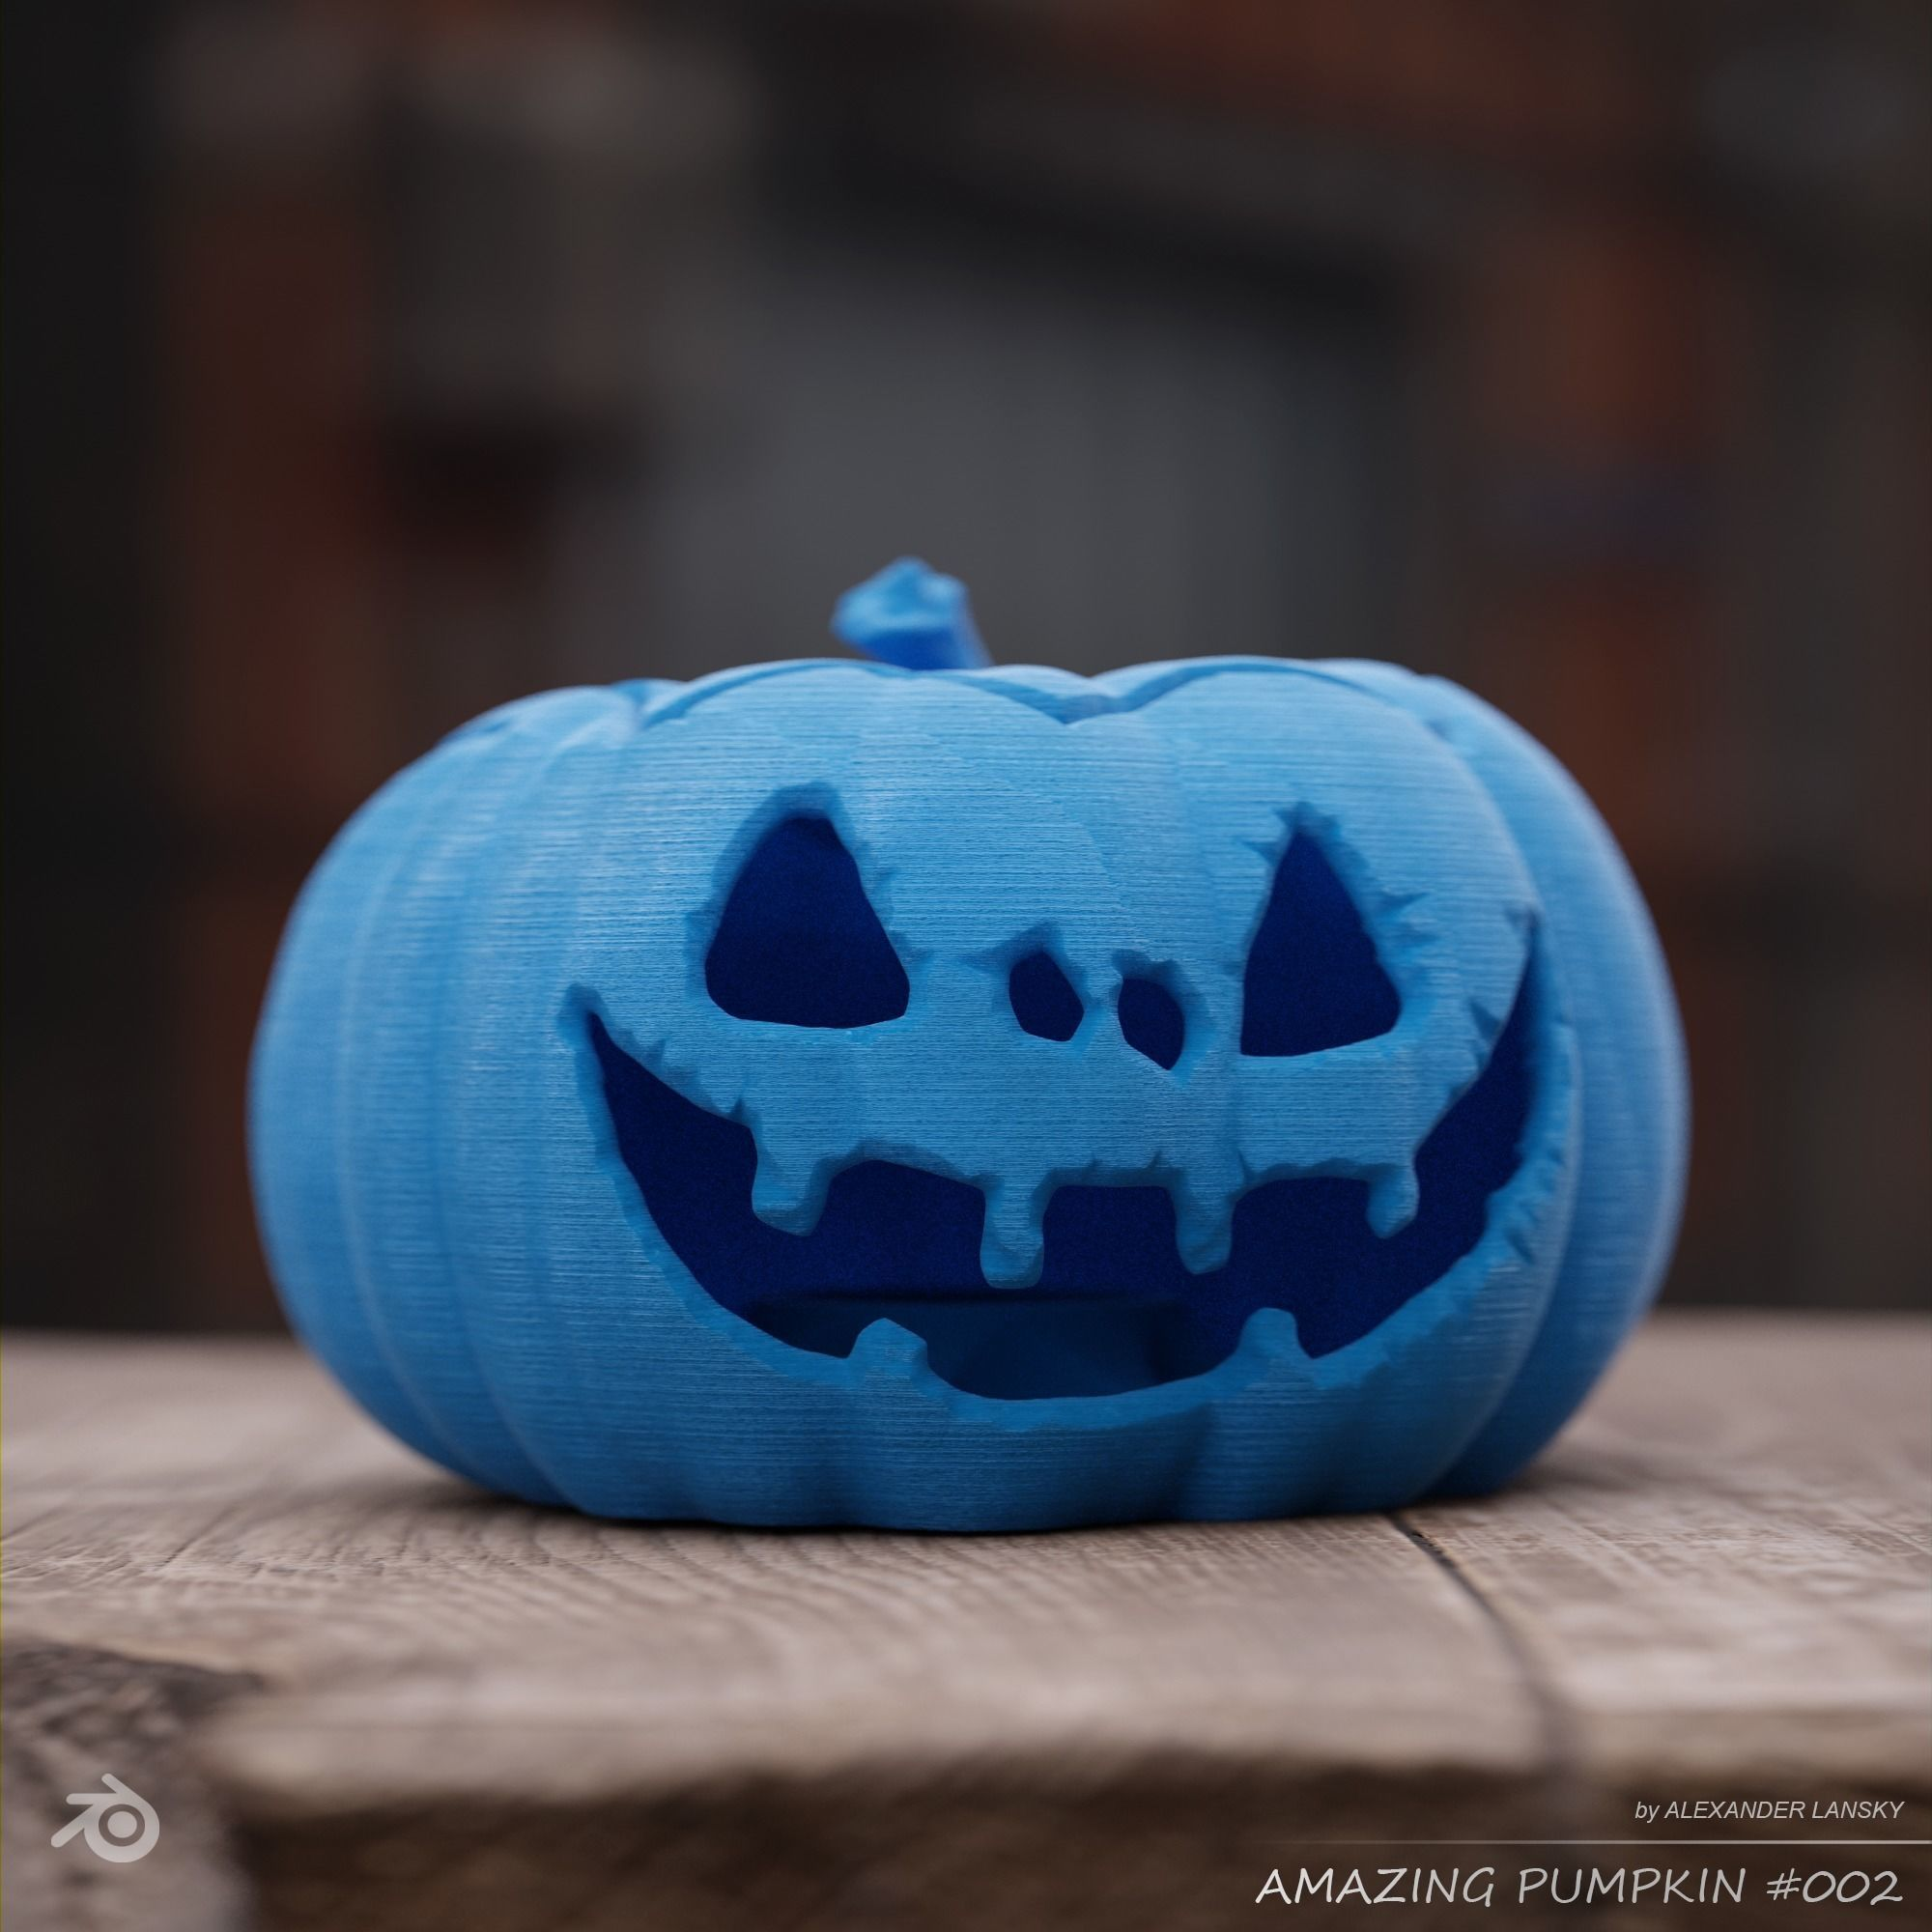 Amazing Pumpkin 002